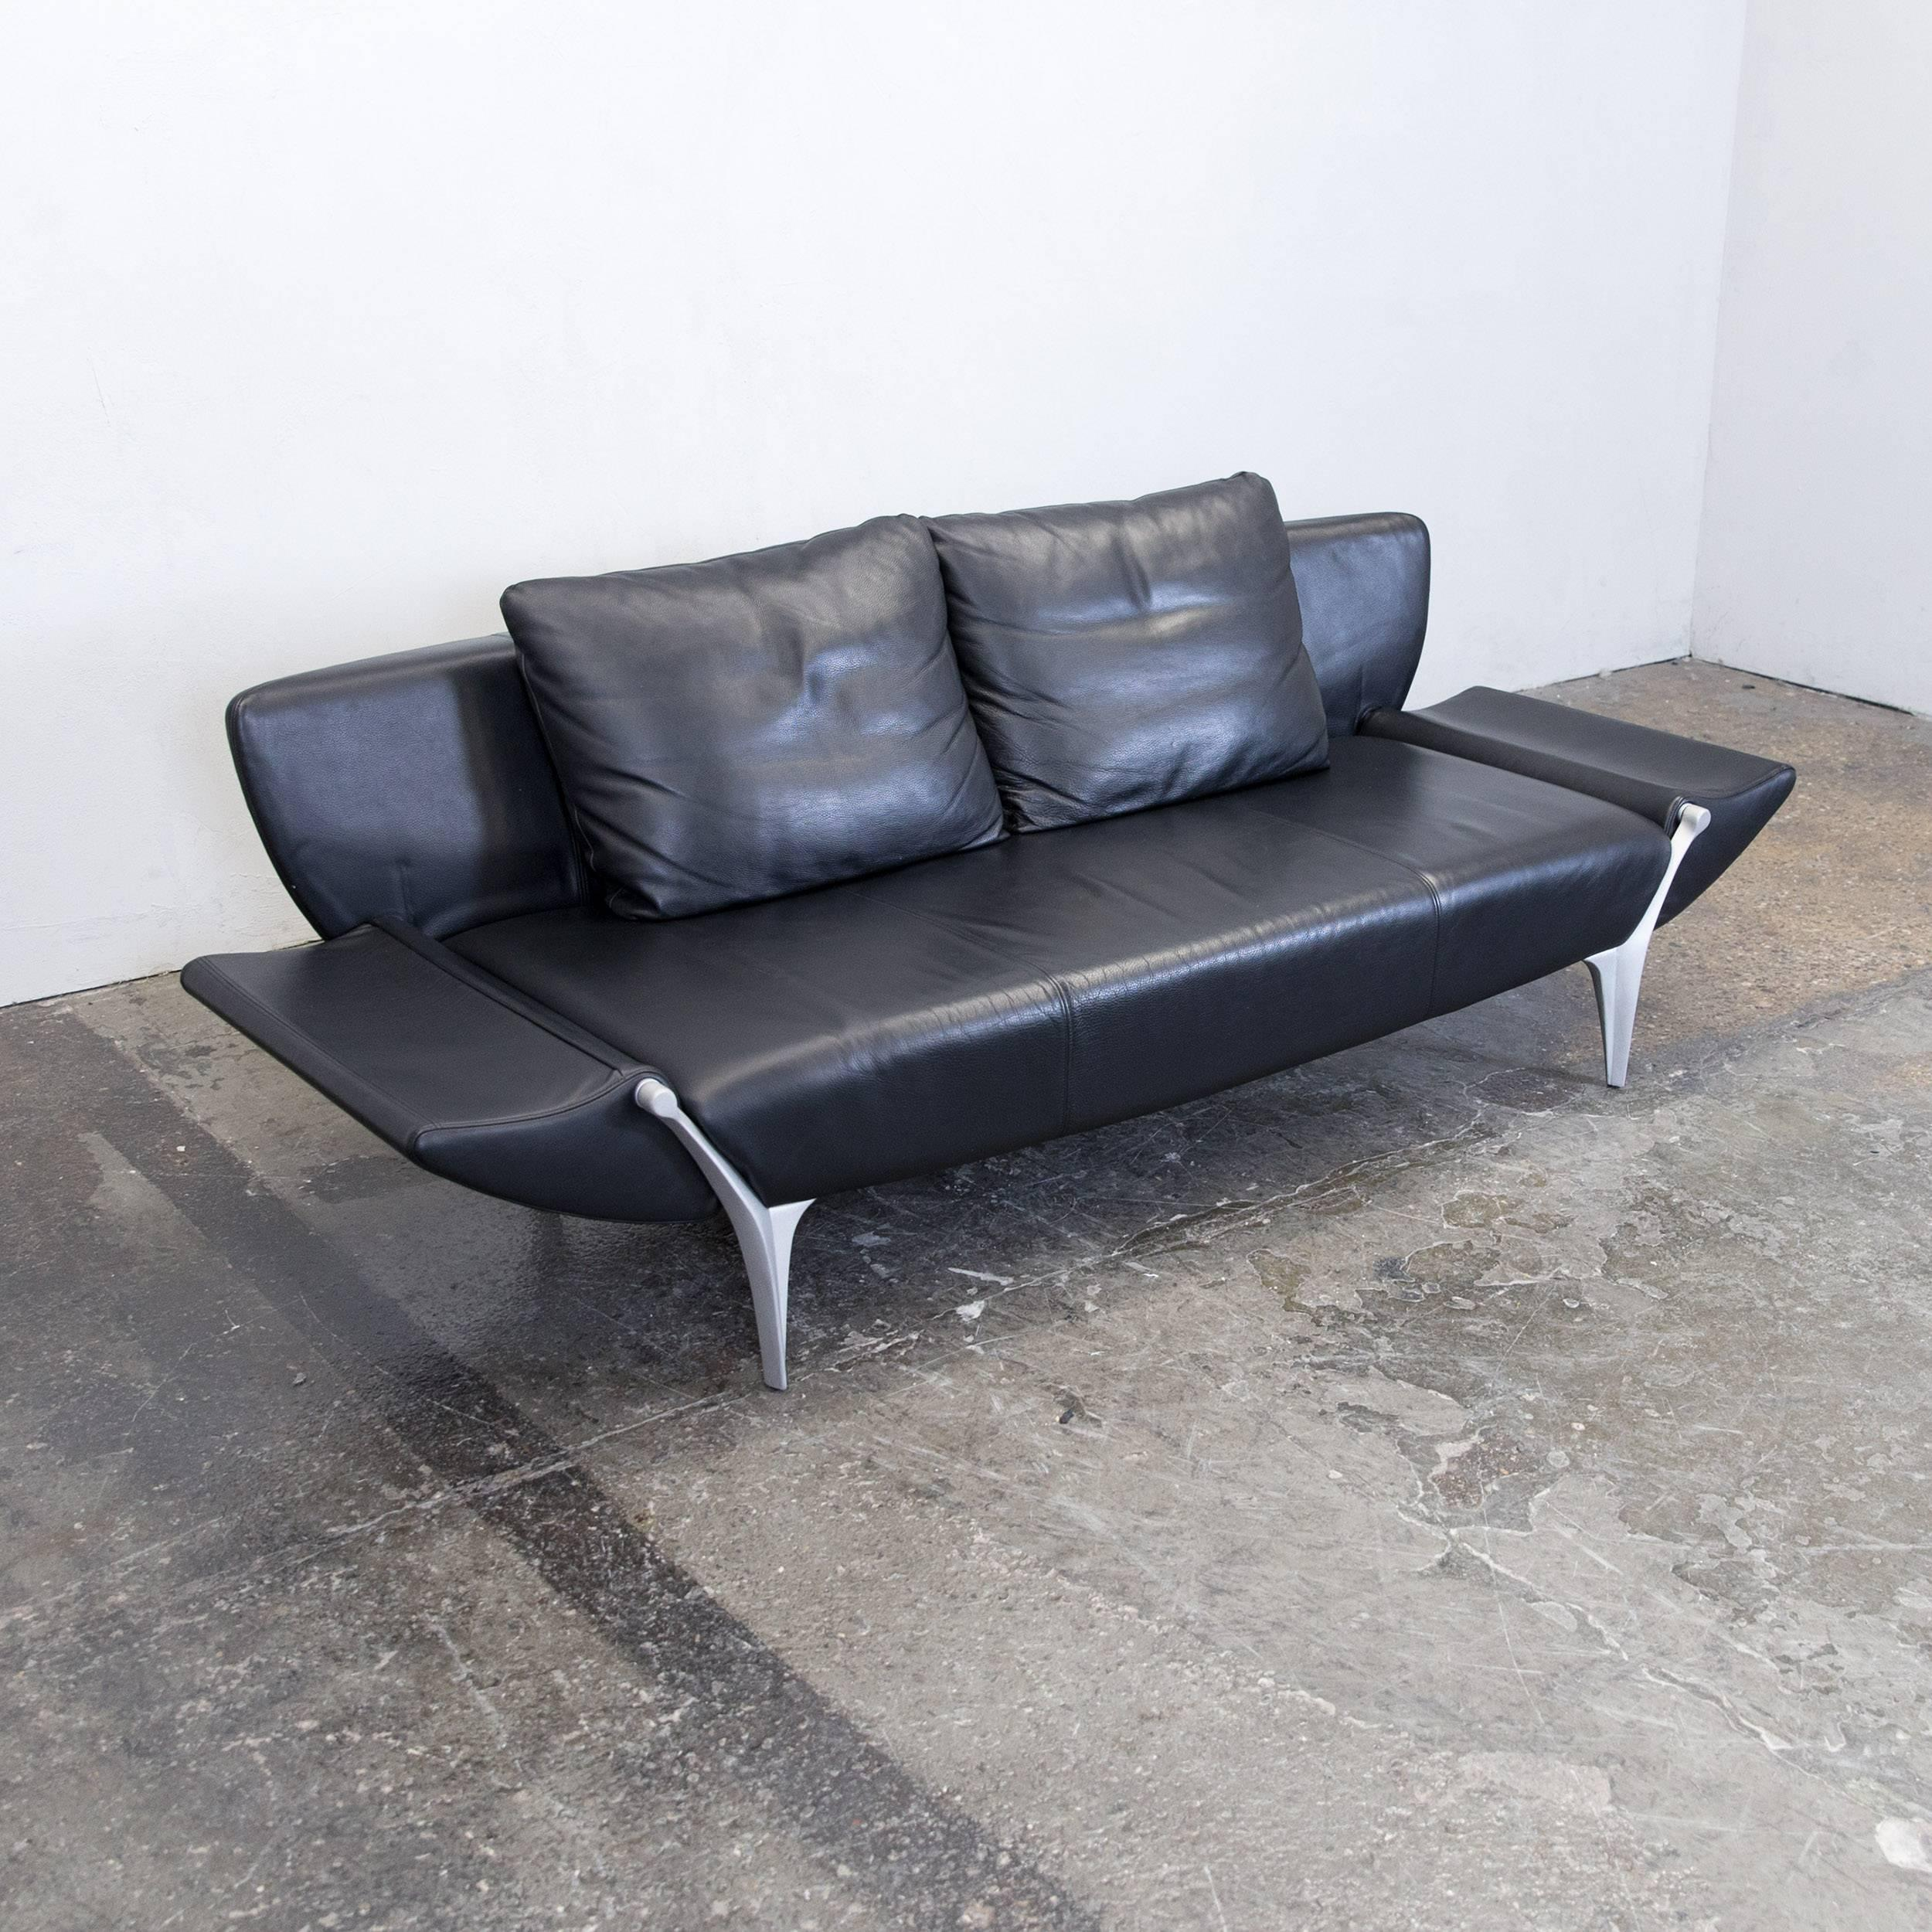 sofa schwarz best genial schwarze sofa bilder collections with sofa schwarz best rolf benz. Black Bedroom Furniture Sets. Home Design Ideas